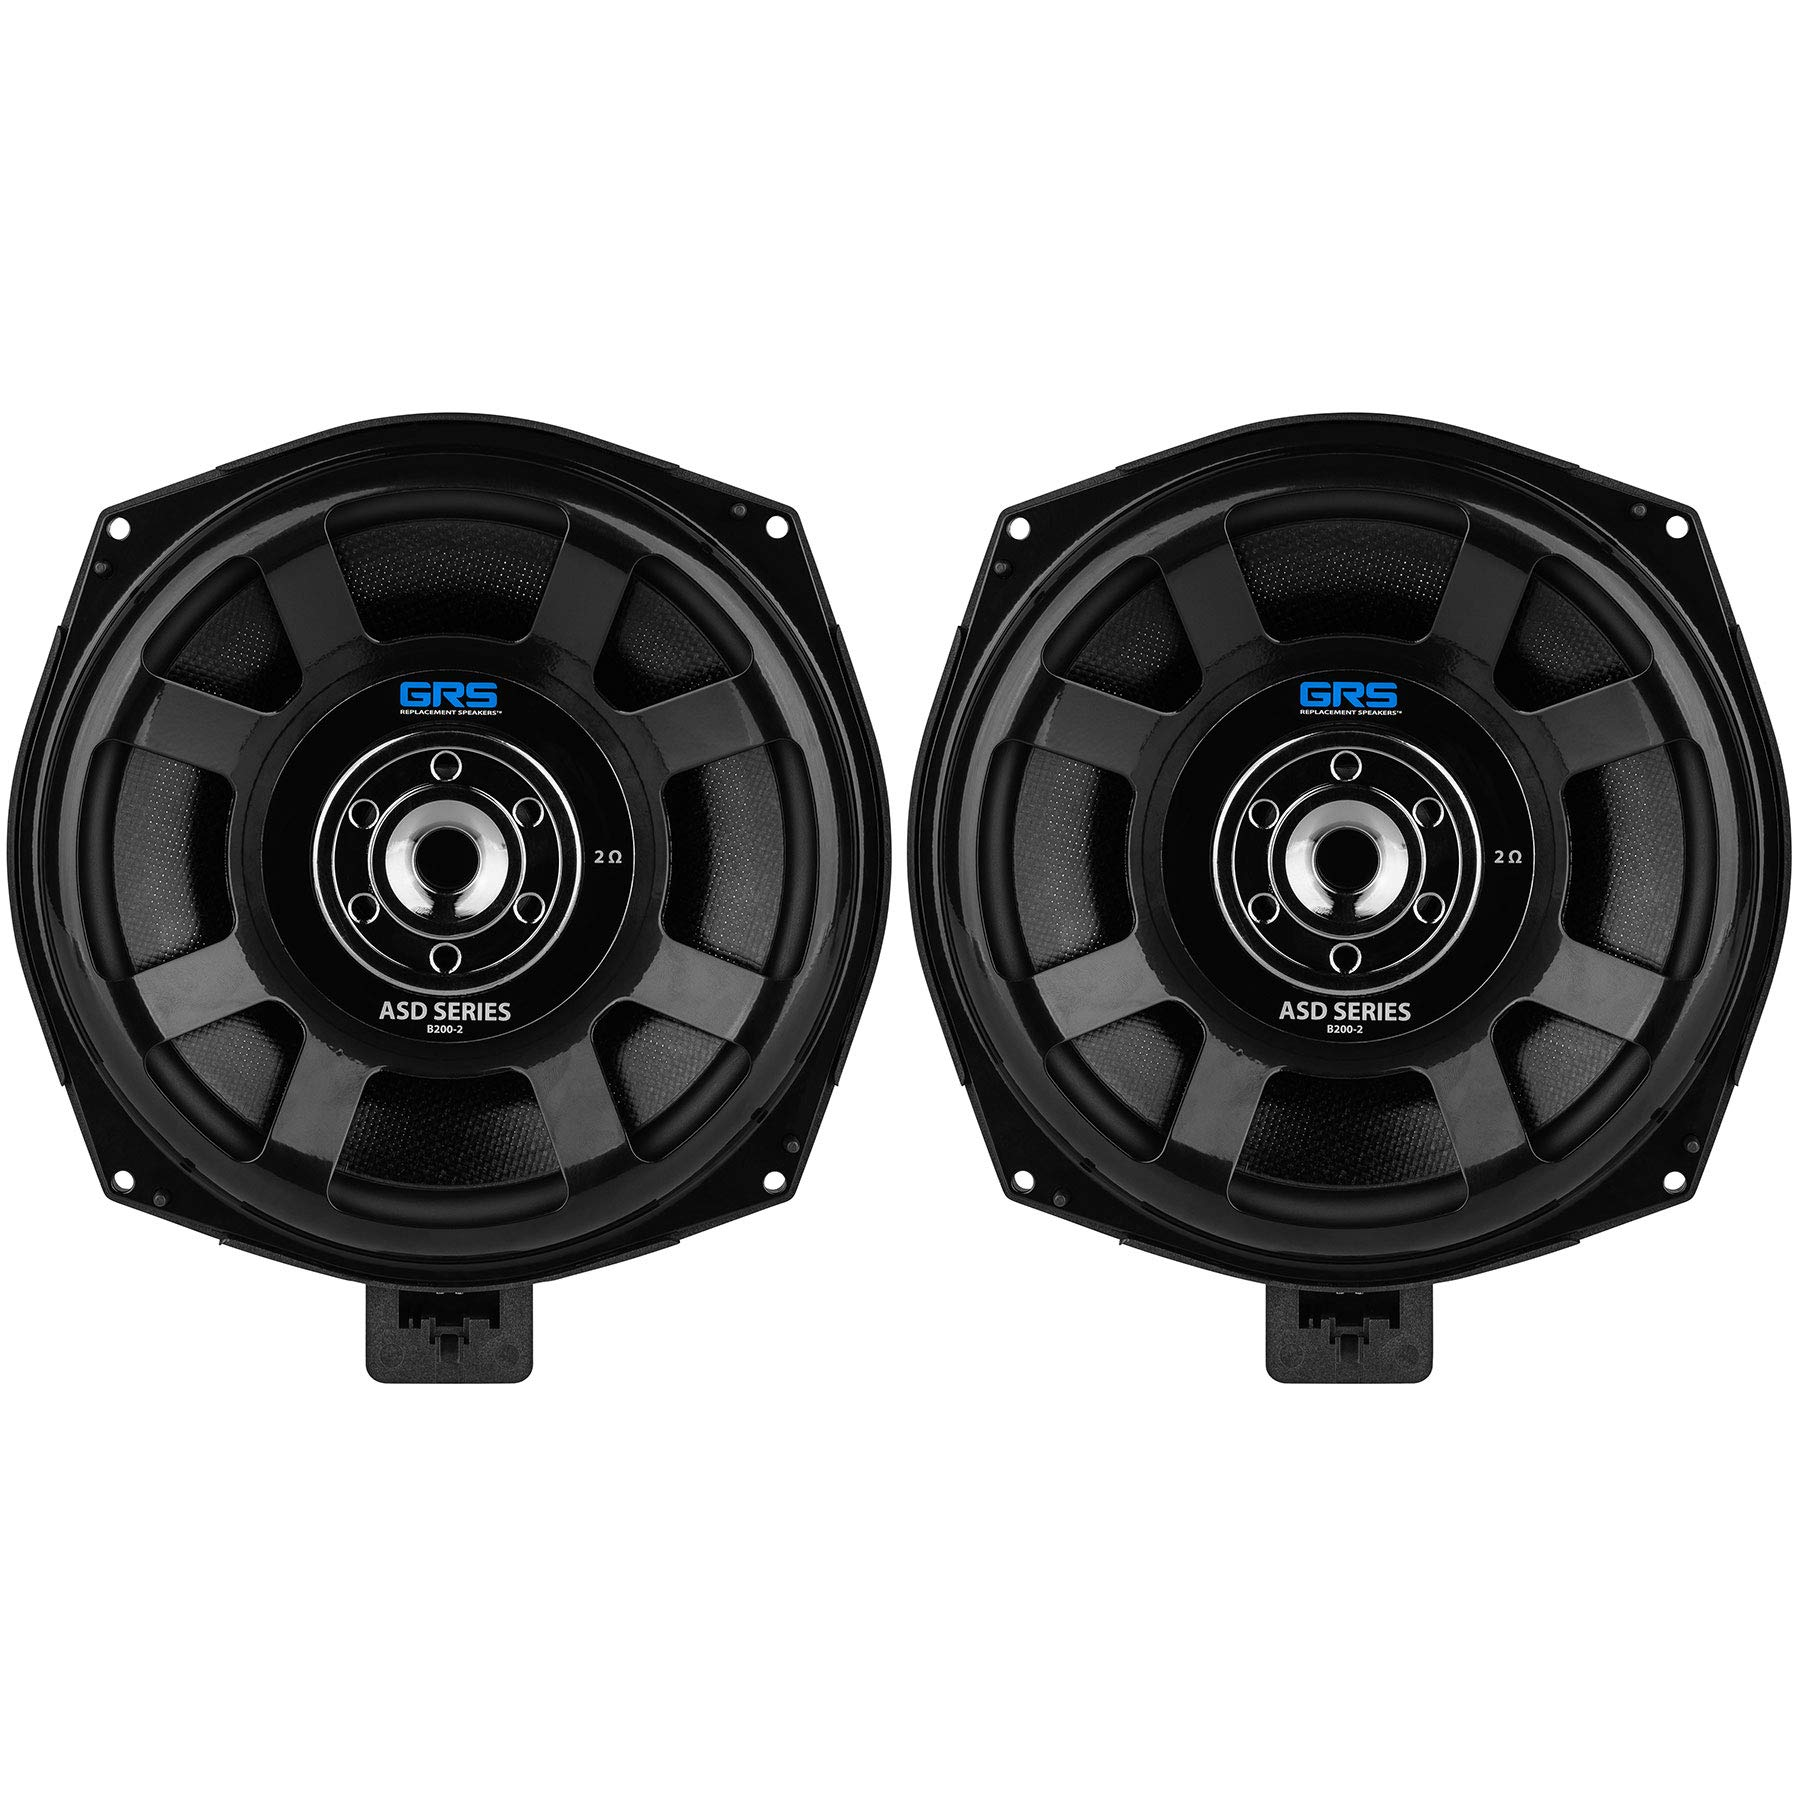 GRS B200-2 ASD Series 8'' Glass Fiber Subwoofer Speaker Pair for Select BMW Models 2 Ohms